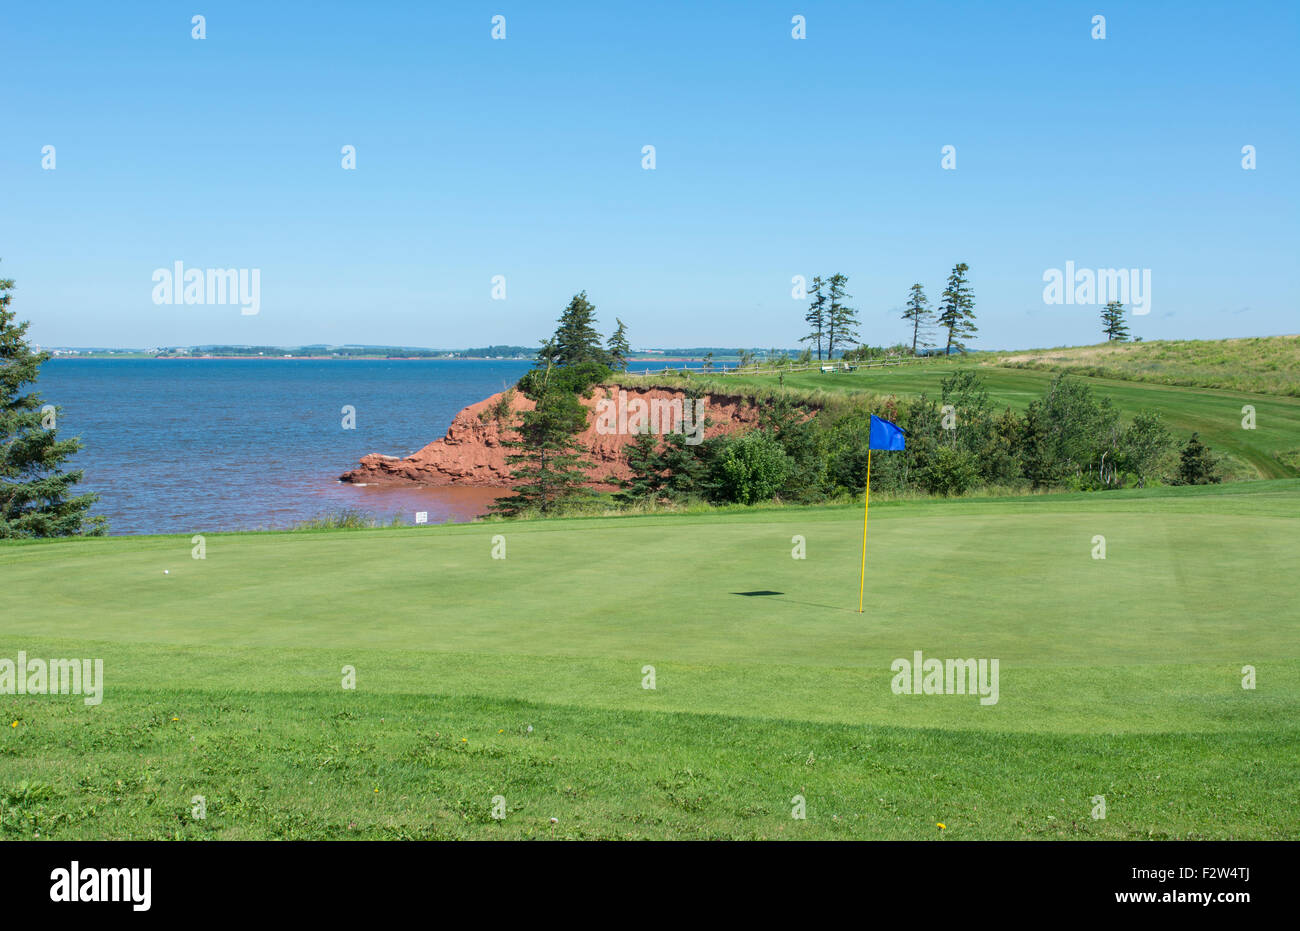 Canada Prince Edward Island, P.E.I. golfing at Belfast Highland Greens near ocean with cliff - Stock Image